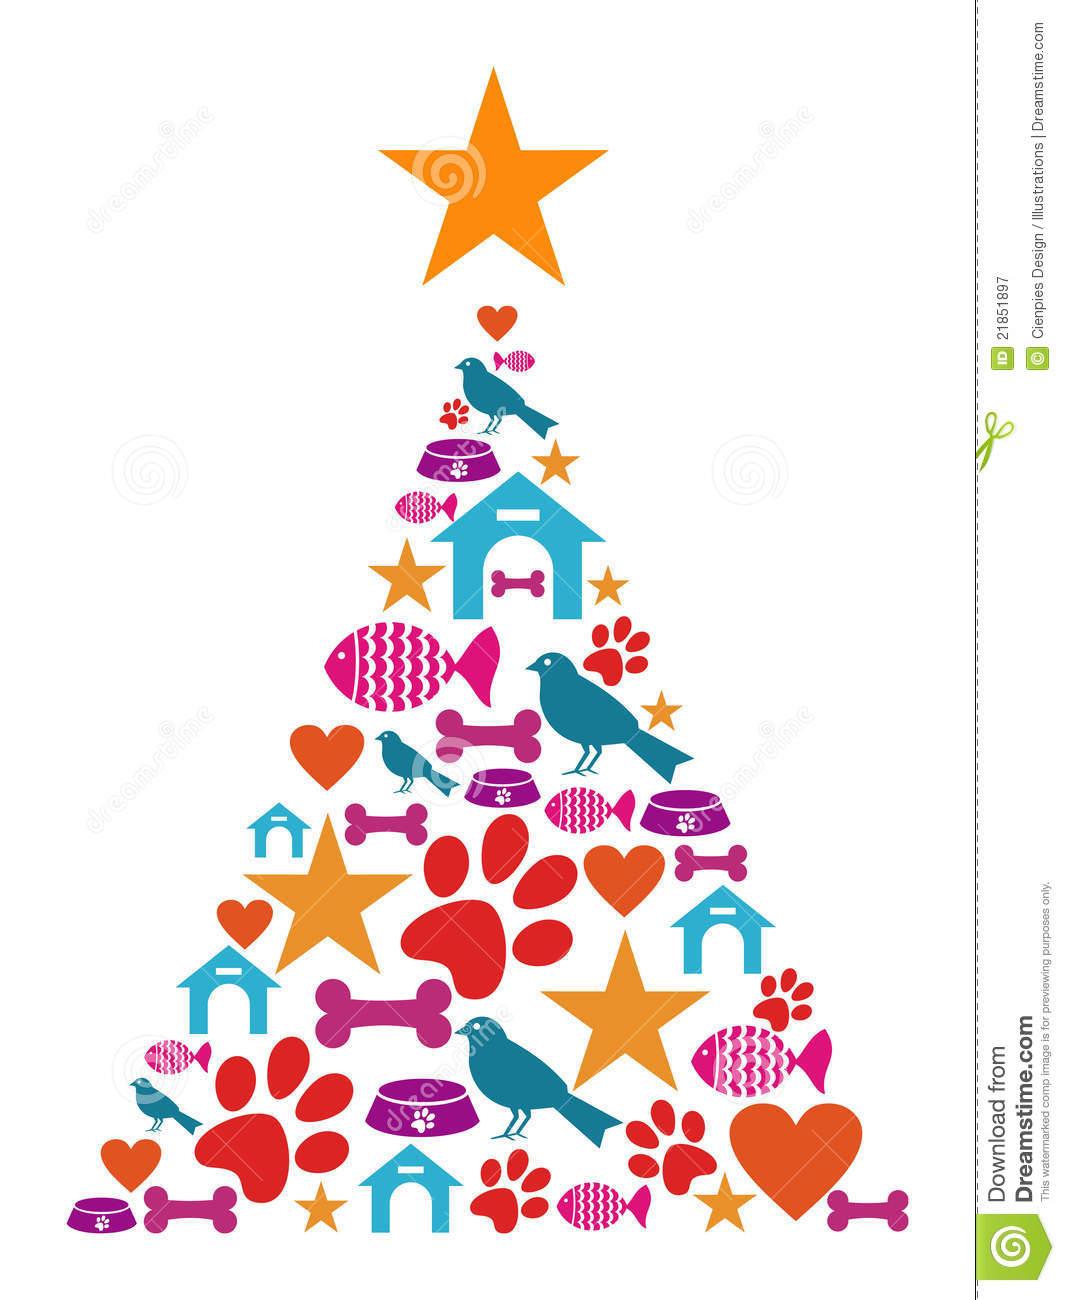 More similar stock images of ` Pet icons Christmas tree `